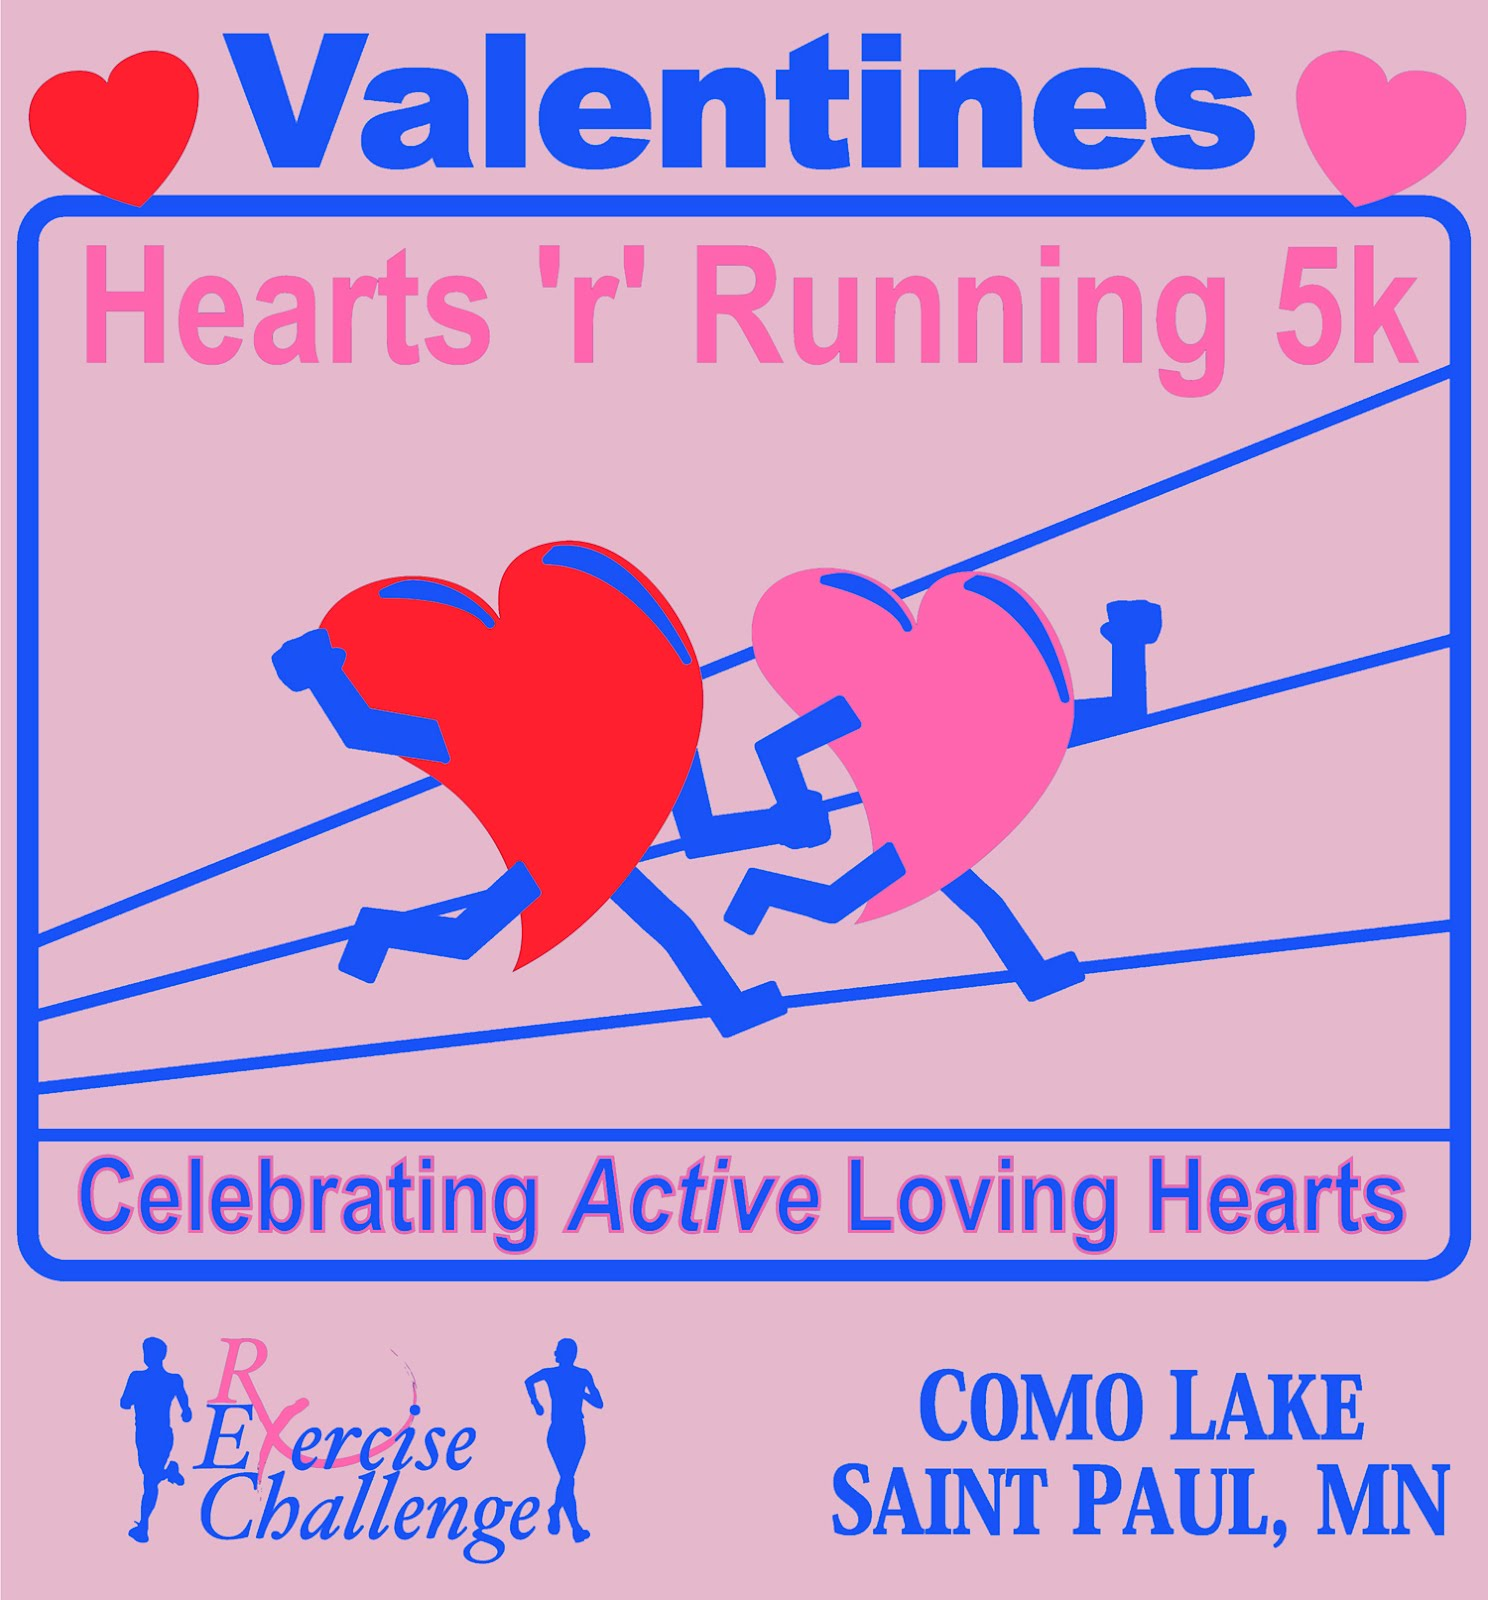 RxExerciseChallenge: Run or Walk 4th Annual Valentines Hearts 'r' Running 5k @ Como Lake, St ...